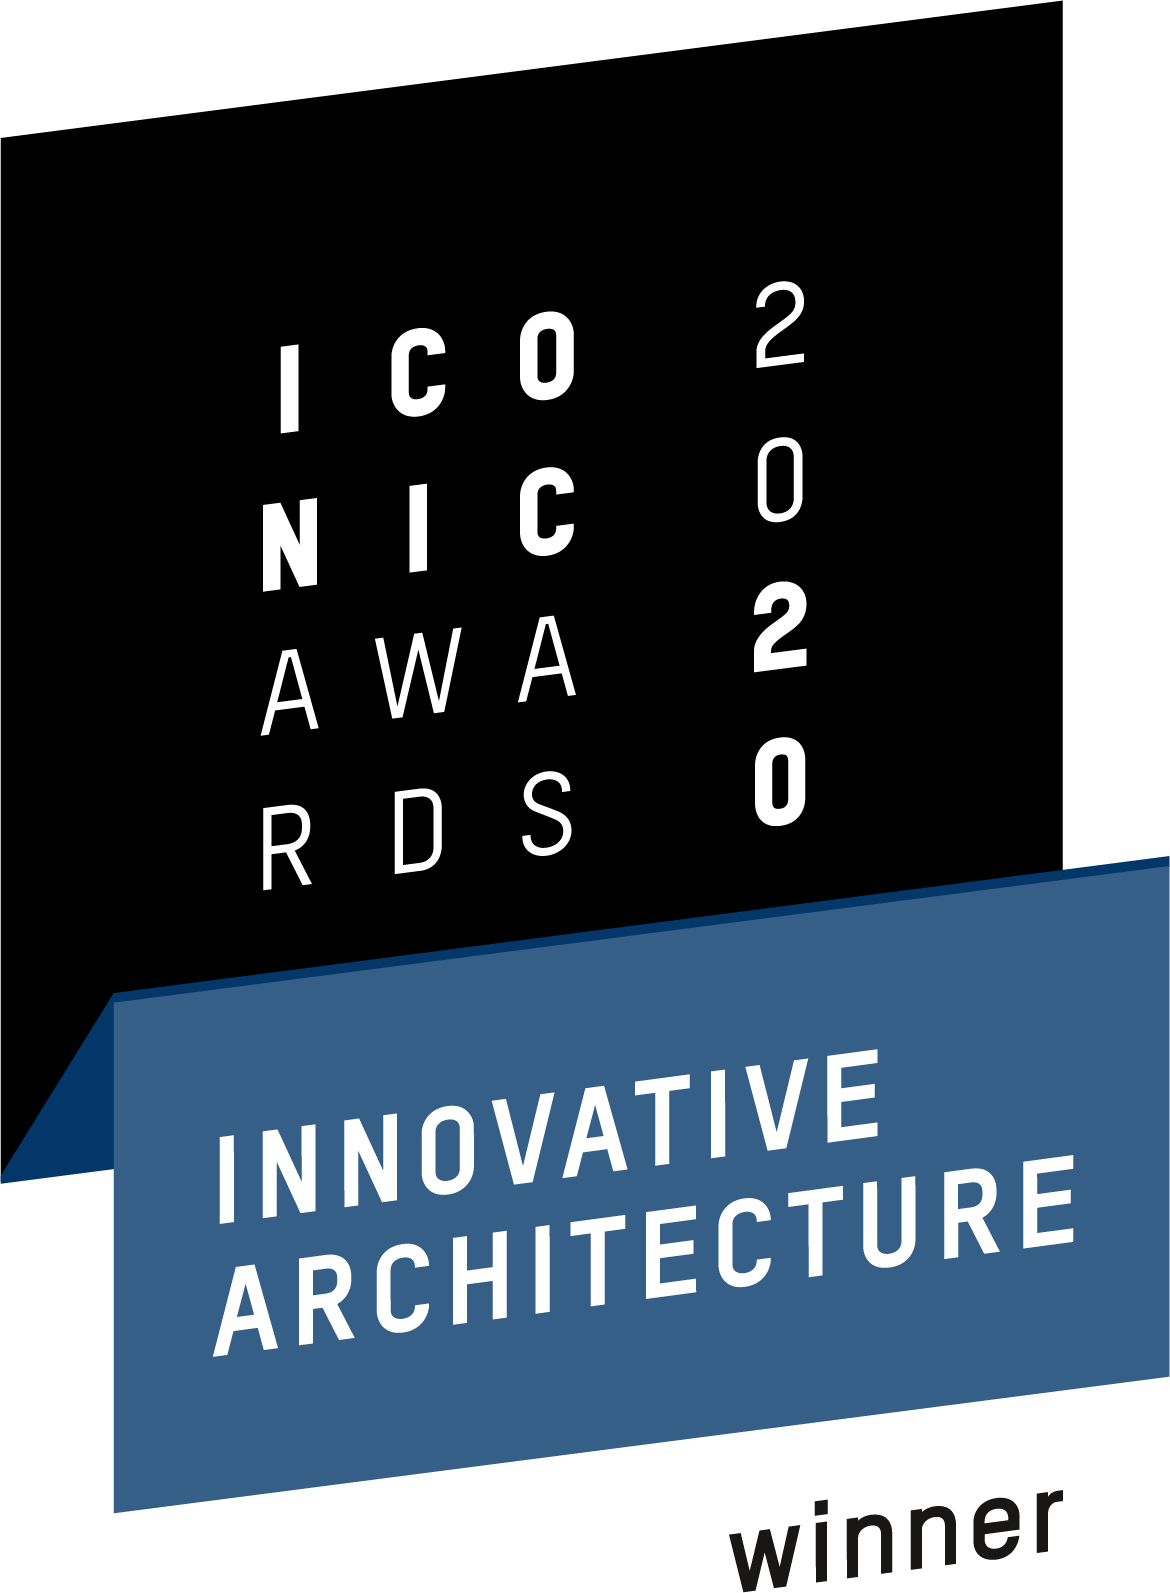 "Der Rat für Formgebung zeichnete in diesem Jahr die Dallmer Duschrinne CeraFrame Individual mit dem Titel ""ICONIC AWARDS 2020: Innovative Architecture – Winner"" aus.  (Foto: Dallmer GmbH + Co. KG)"